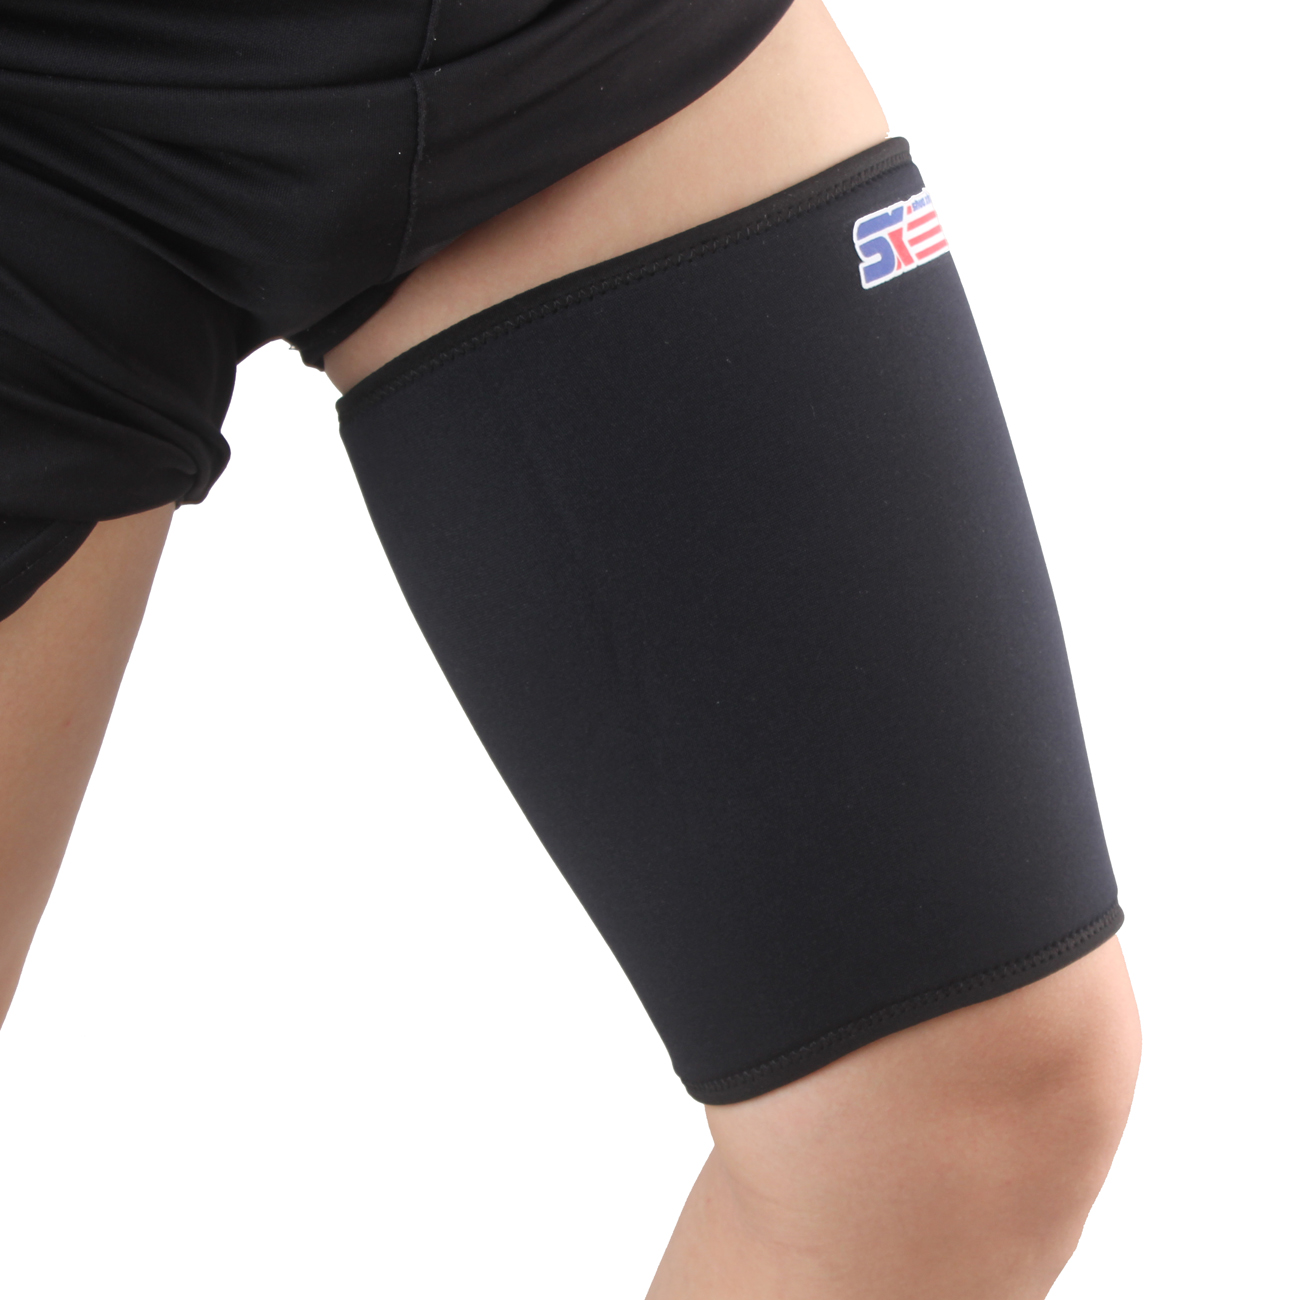 ShuoXin SX563 Sports Gym Fitness Elastic Stretchy Thigh Brace Support Wrap Band - 1PC